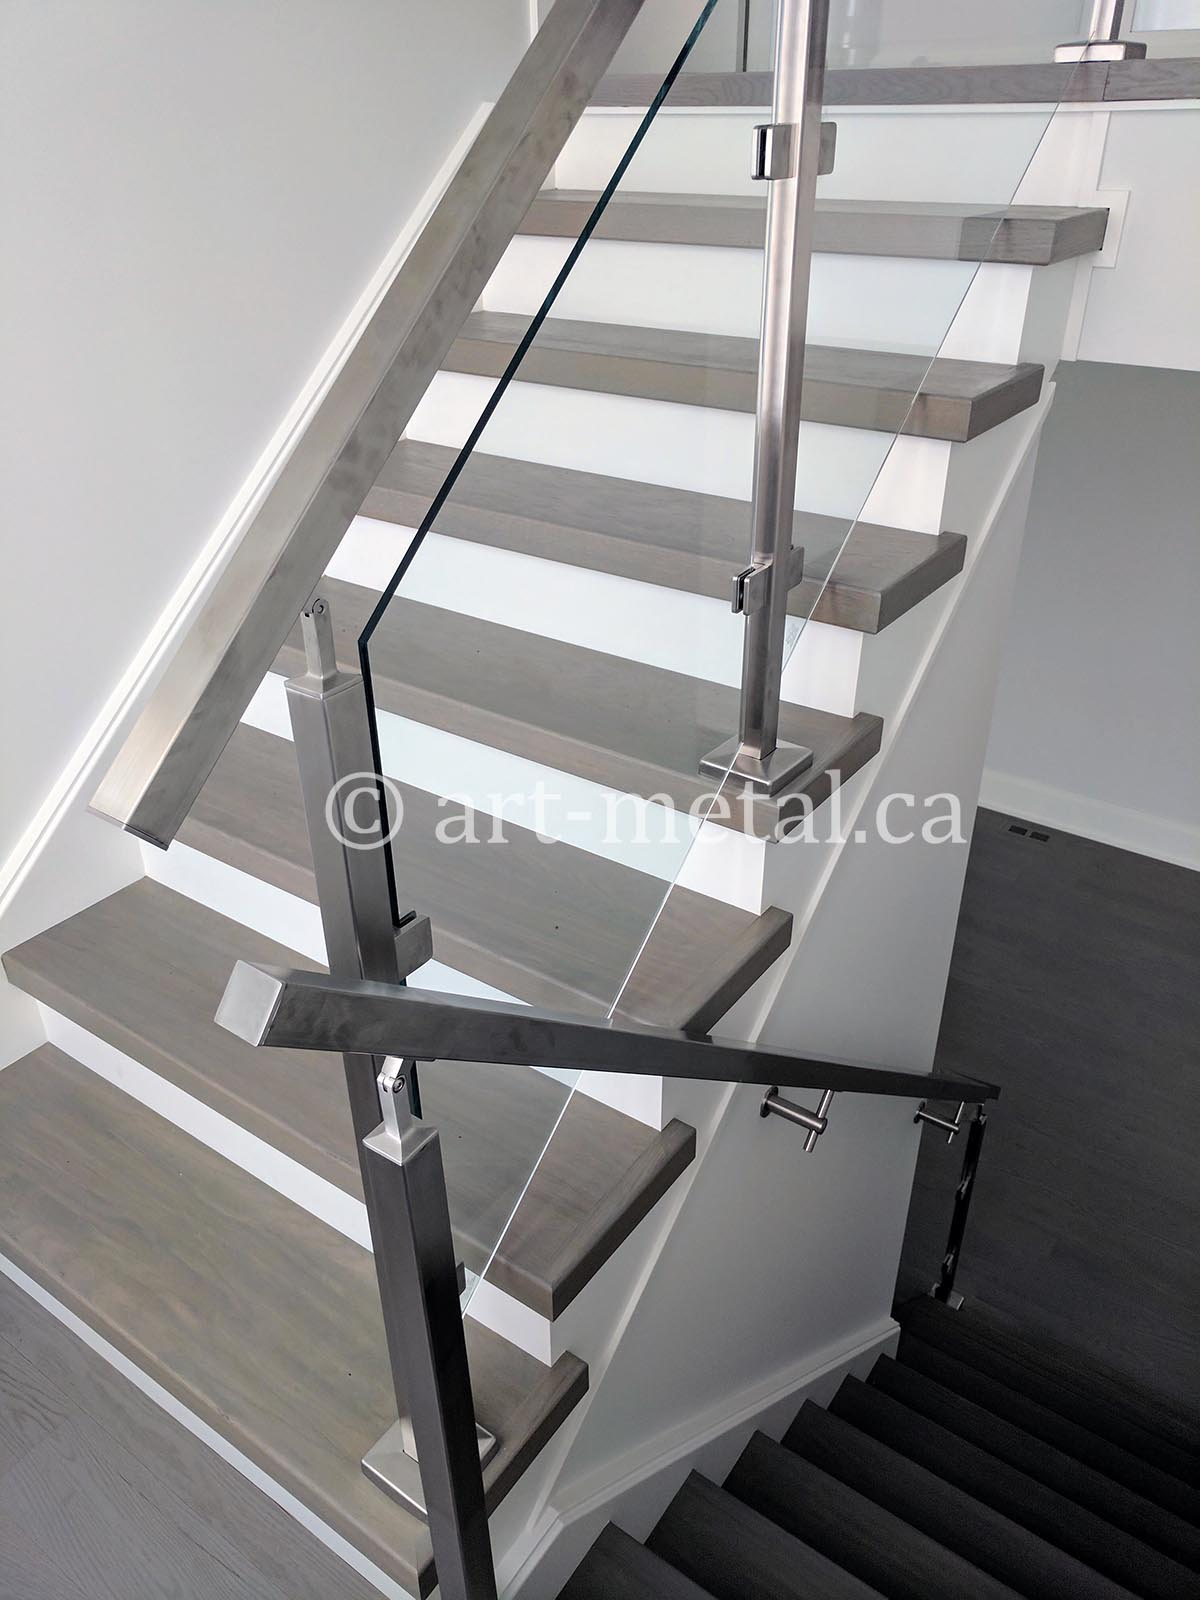 Buy The Best Stainless Steel Glass Railing System In Toronto